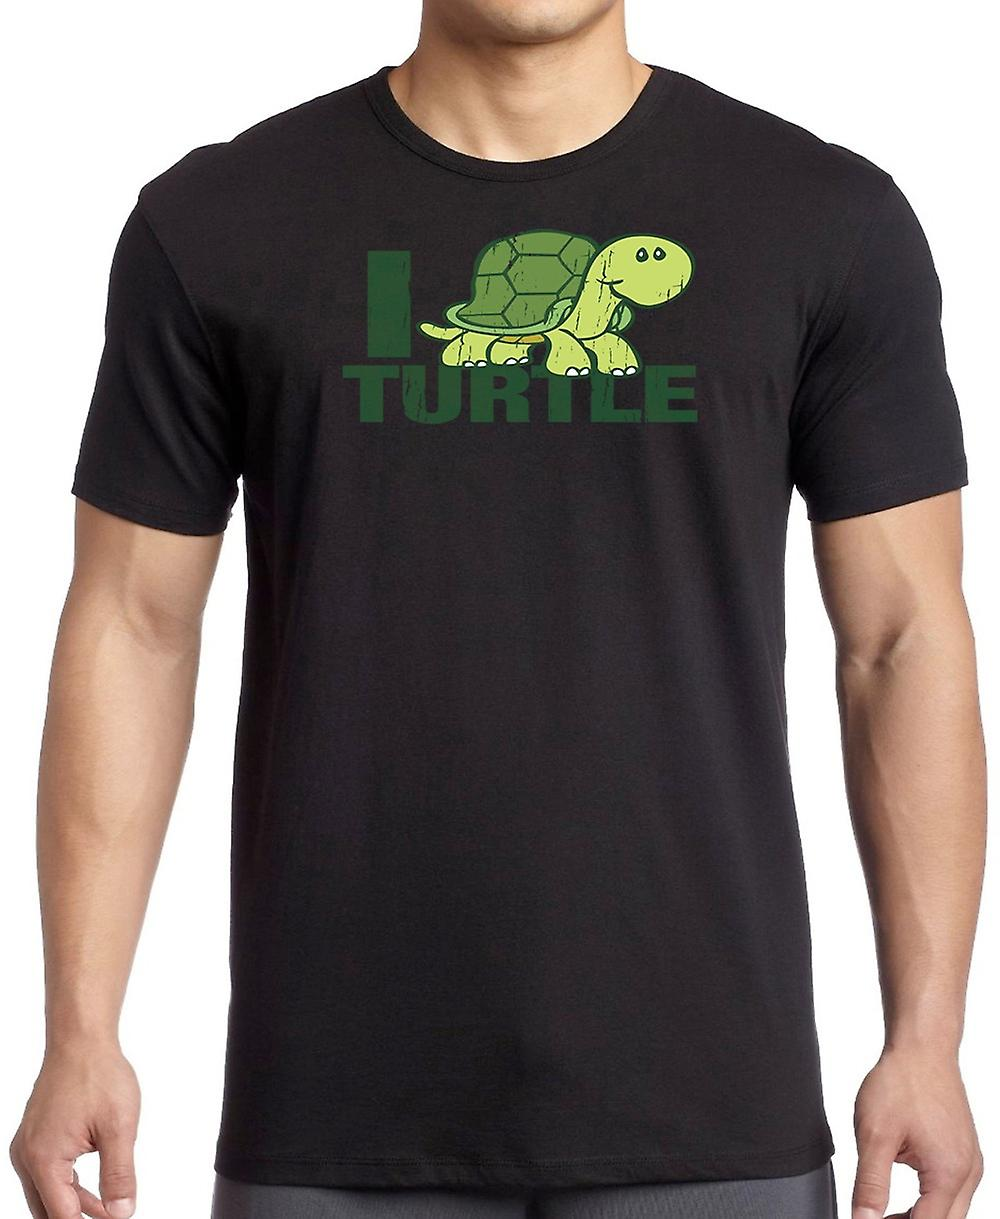 I Love Turtle - Cool T Shirt